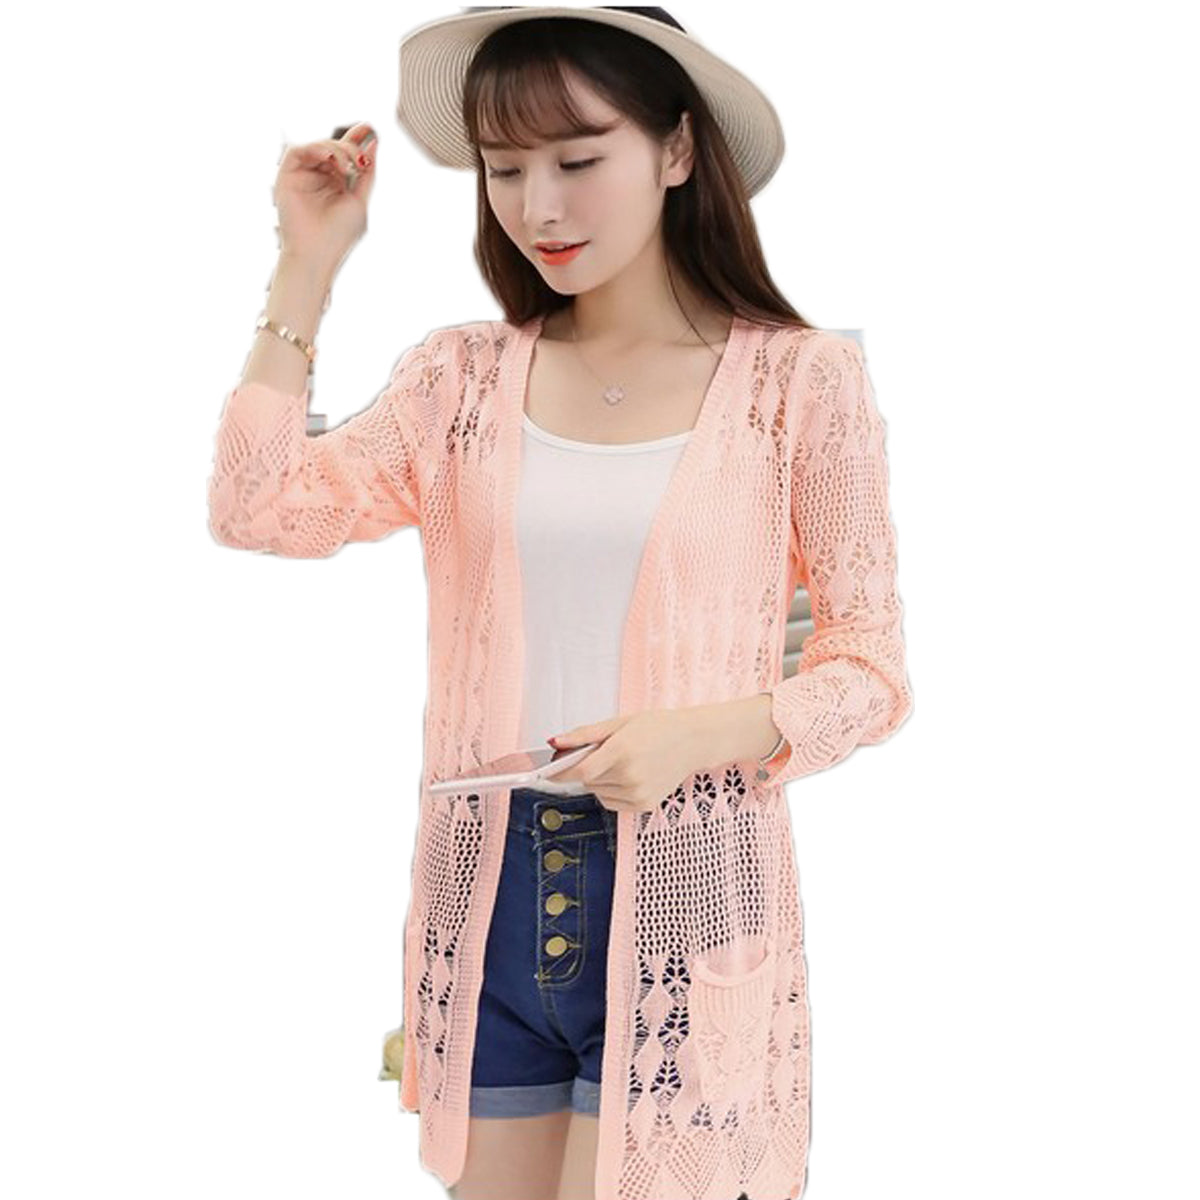 2017 Ladies Crochet Tops Summer Hollow Out Knitted Sweaters Cardigan Rebecas Mujer Fashion Women Beach Cardigan Spring Autumn-lilugal